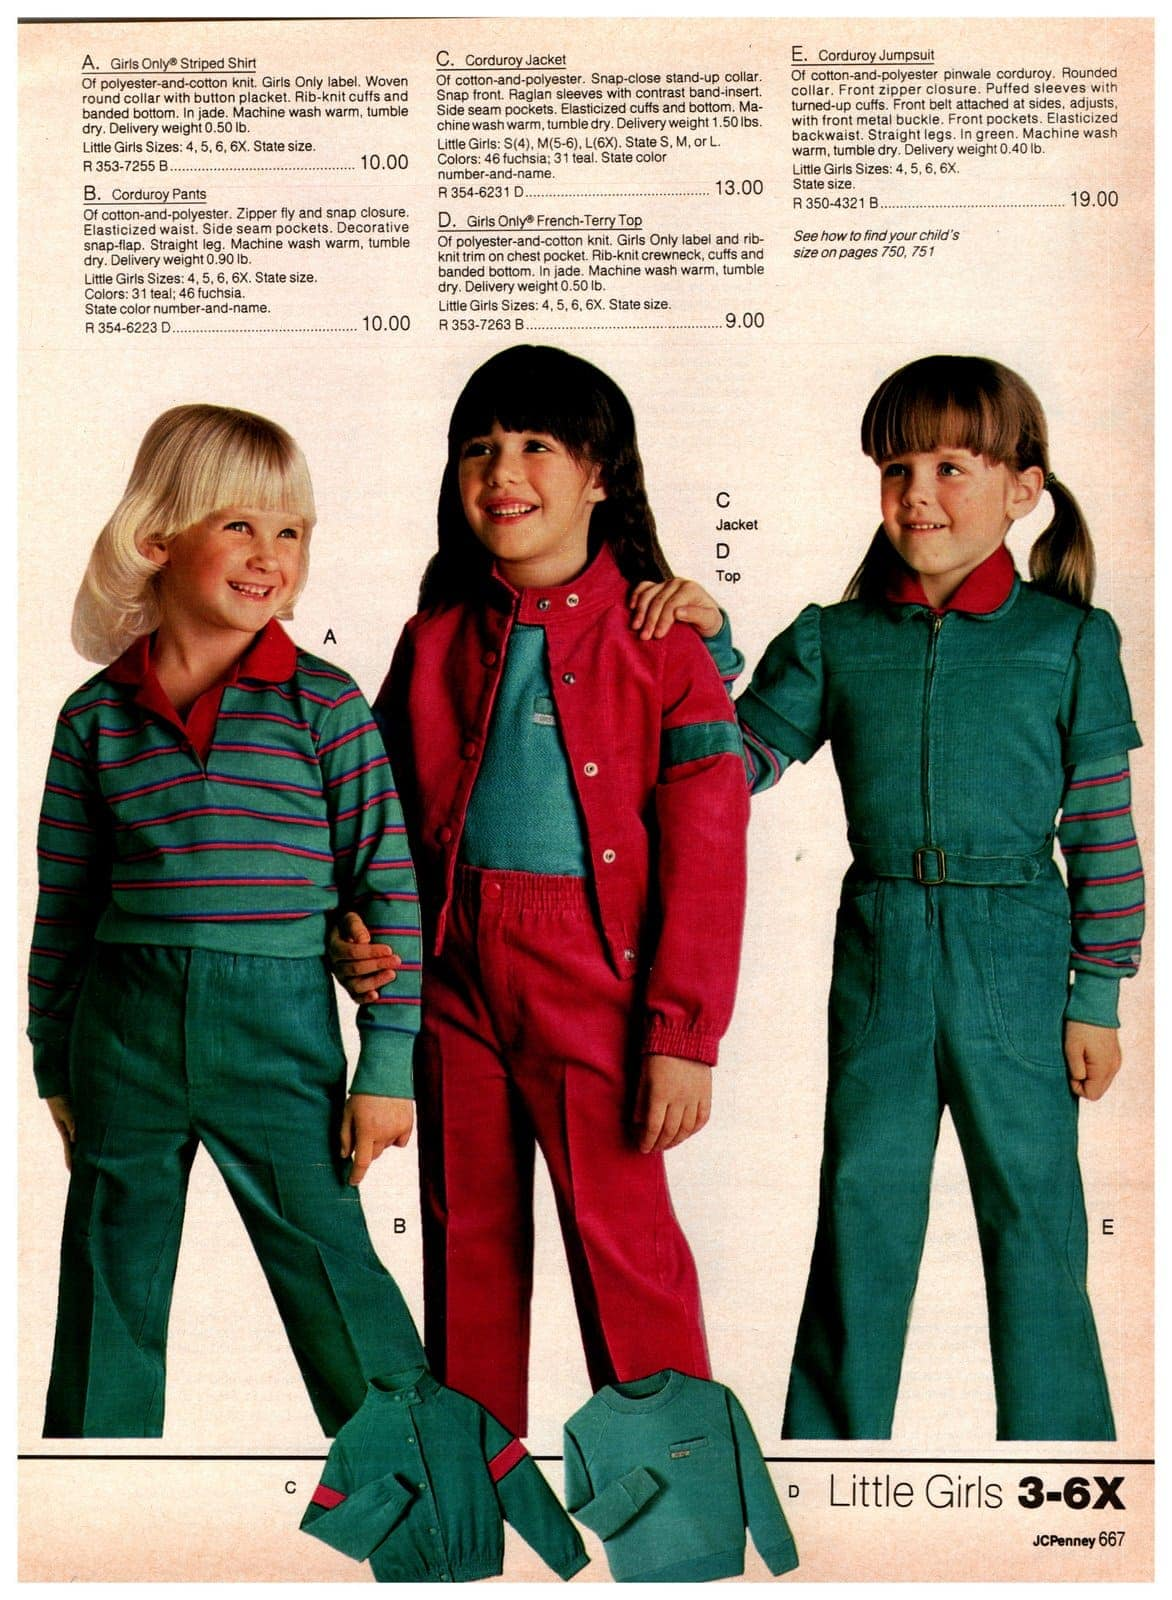 Girls Only clothing - striped shirts, corduroy pants, corduroy jackets, French-terry tops and corduroy jumpsuits